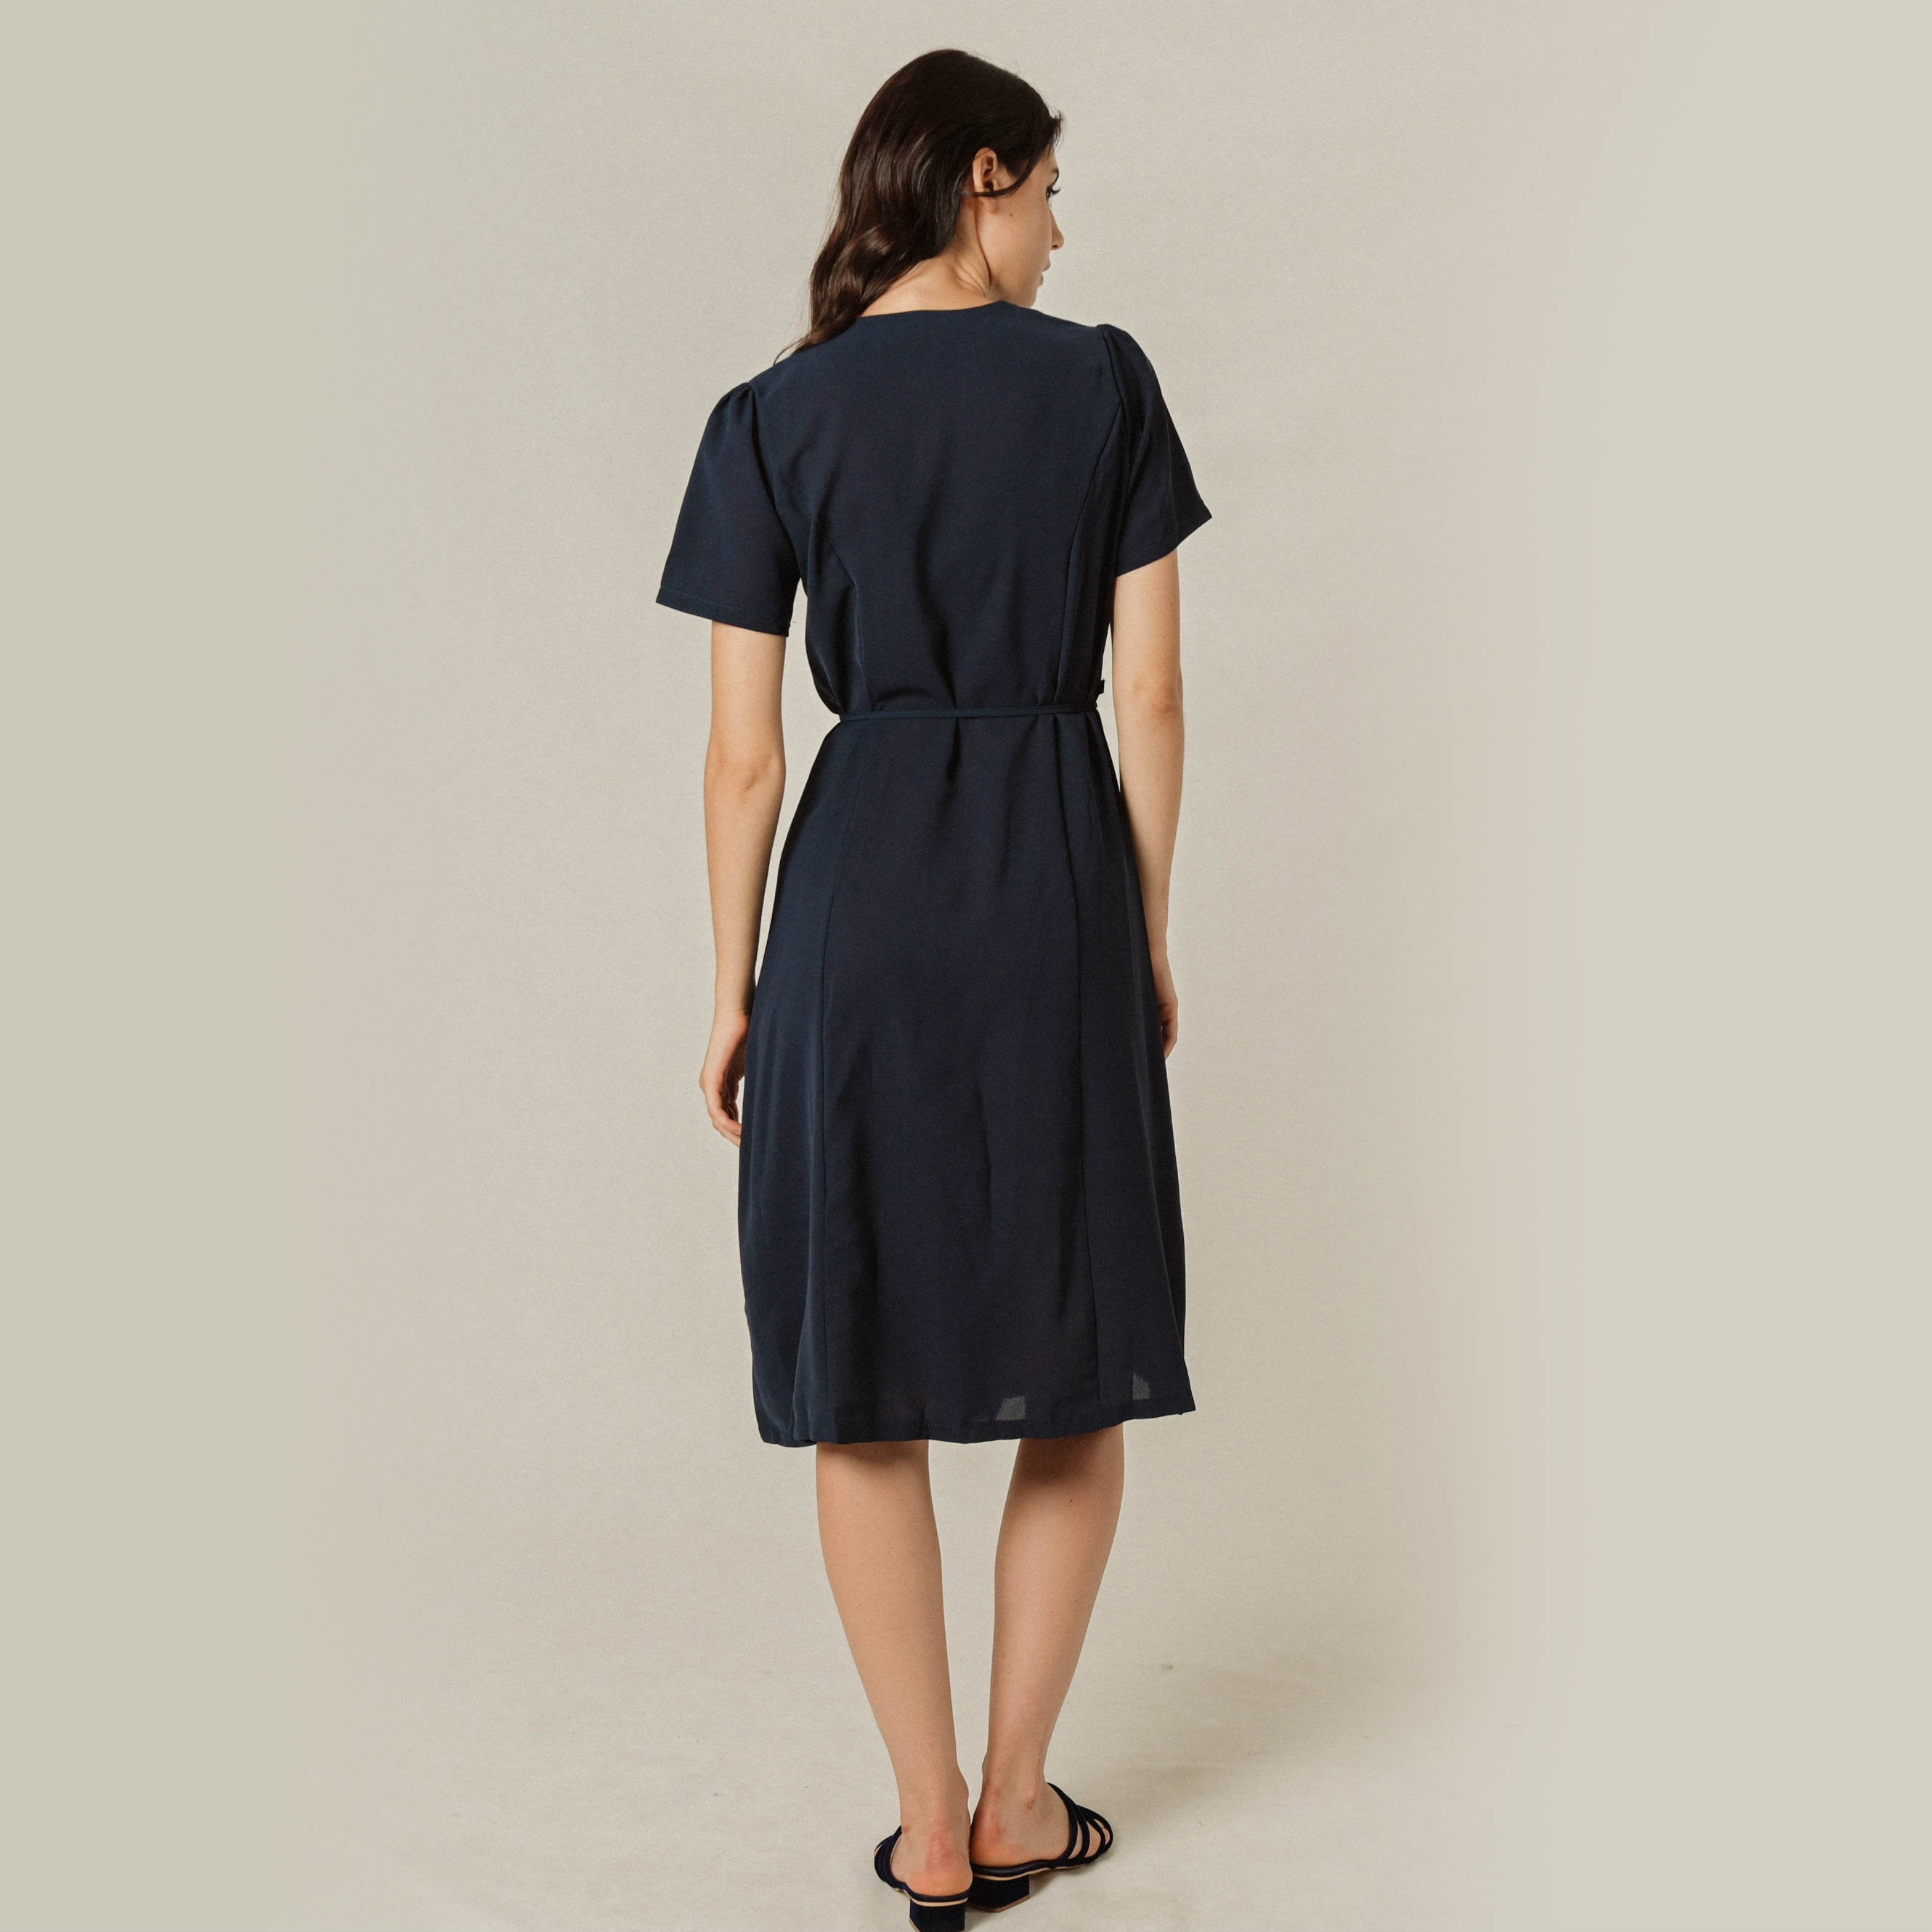 Wyan Buttoned Dress - Navy